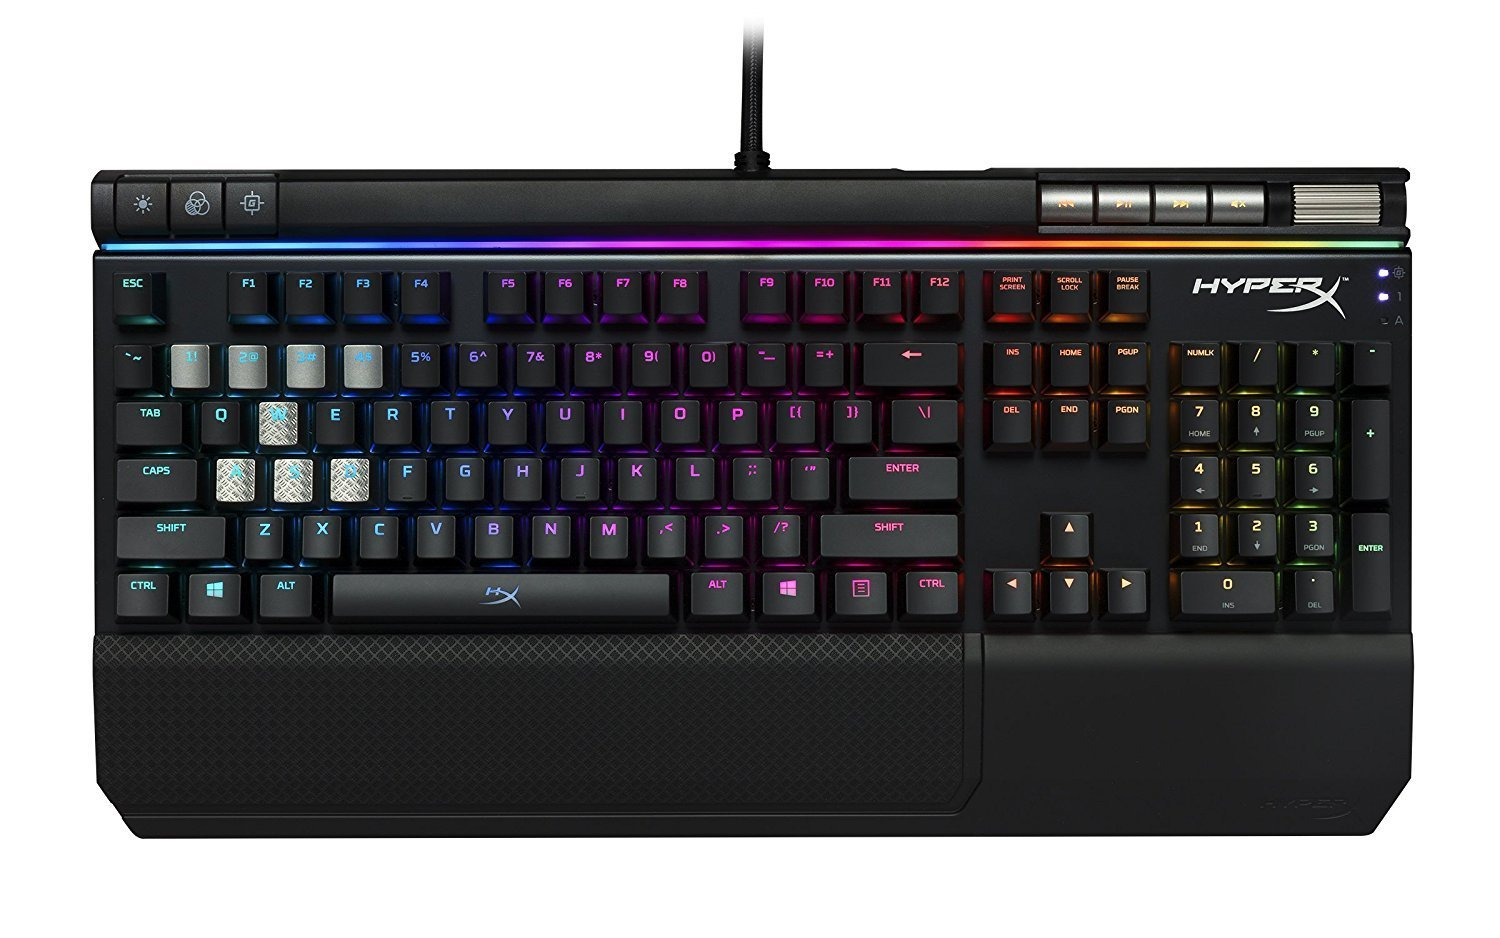 HyperX Alloy Elite RGB Mechanical Gaming Keyboard (Cherry MX Red) for PC image